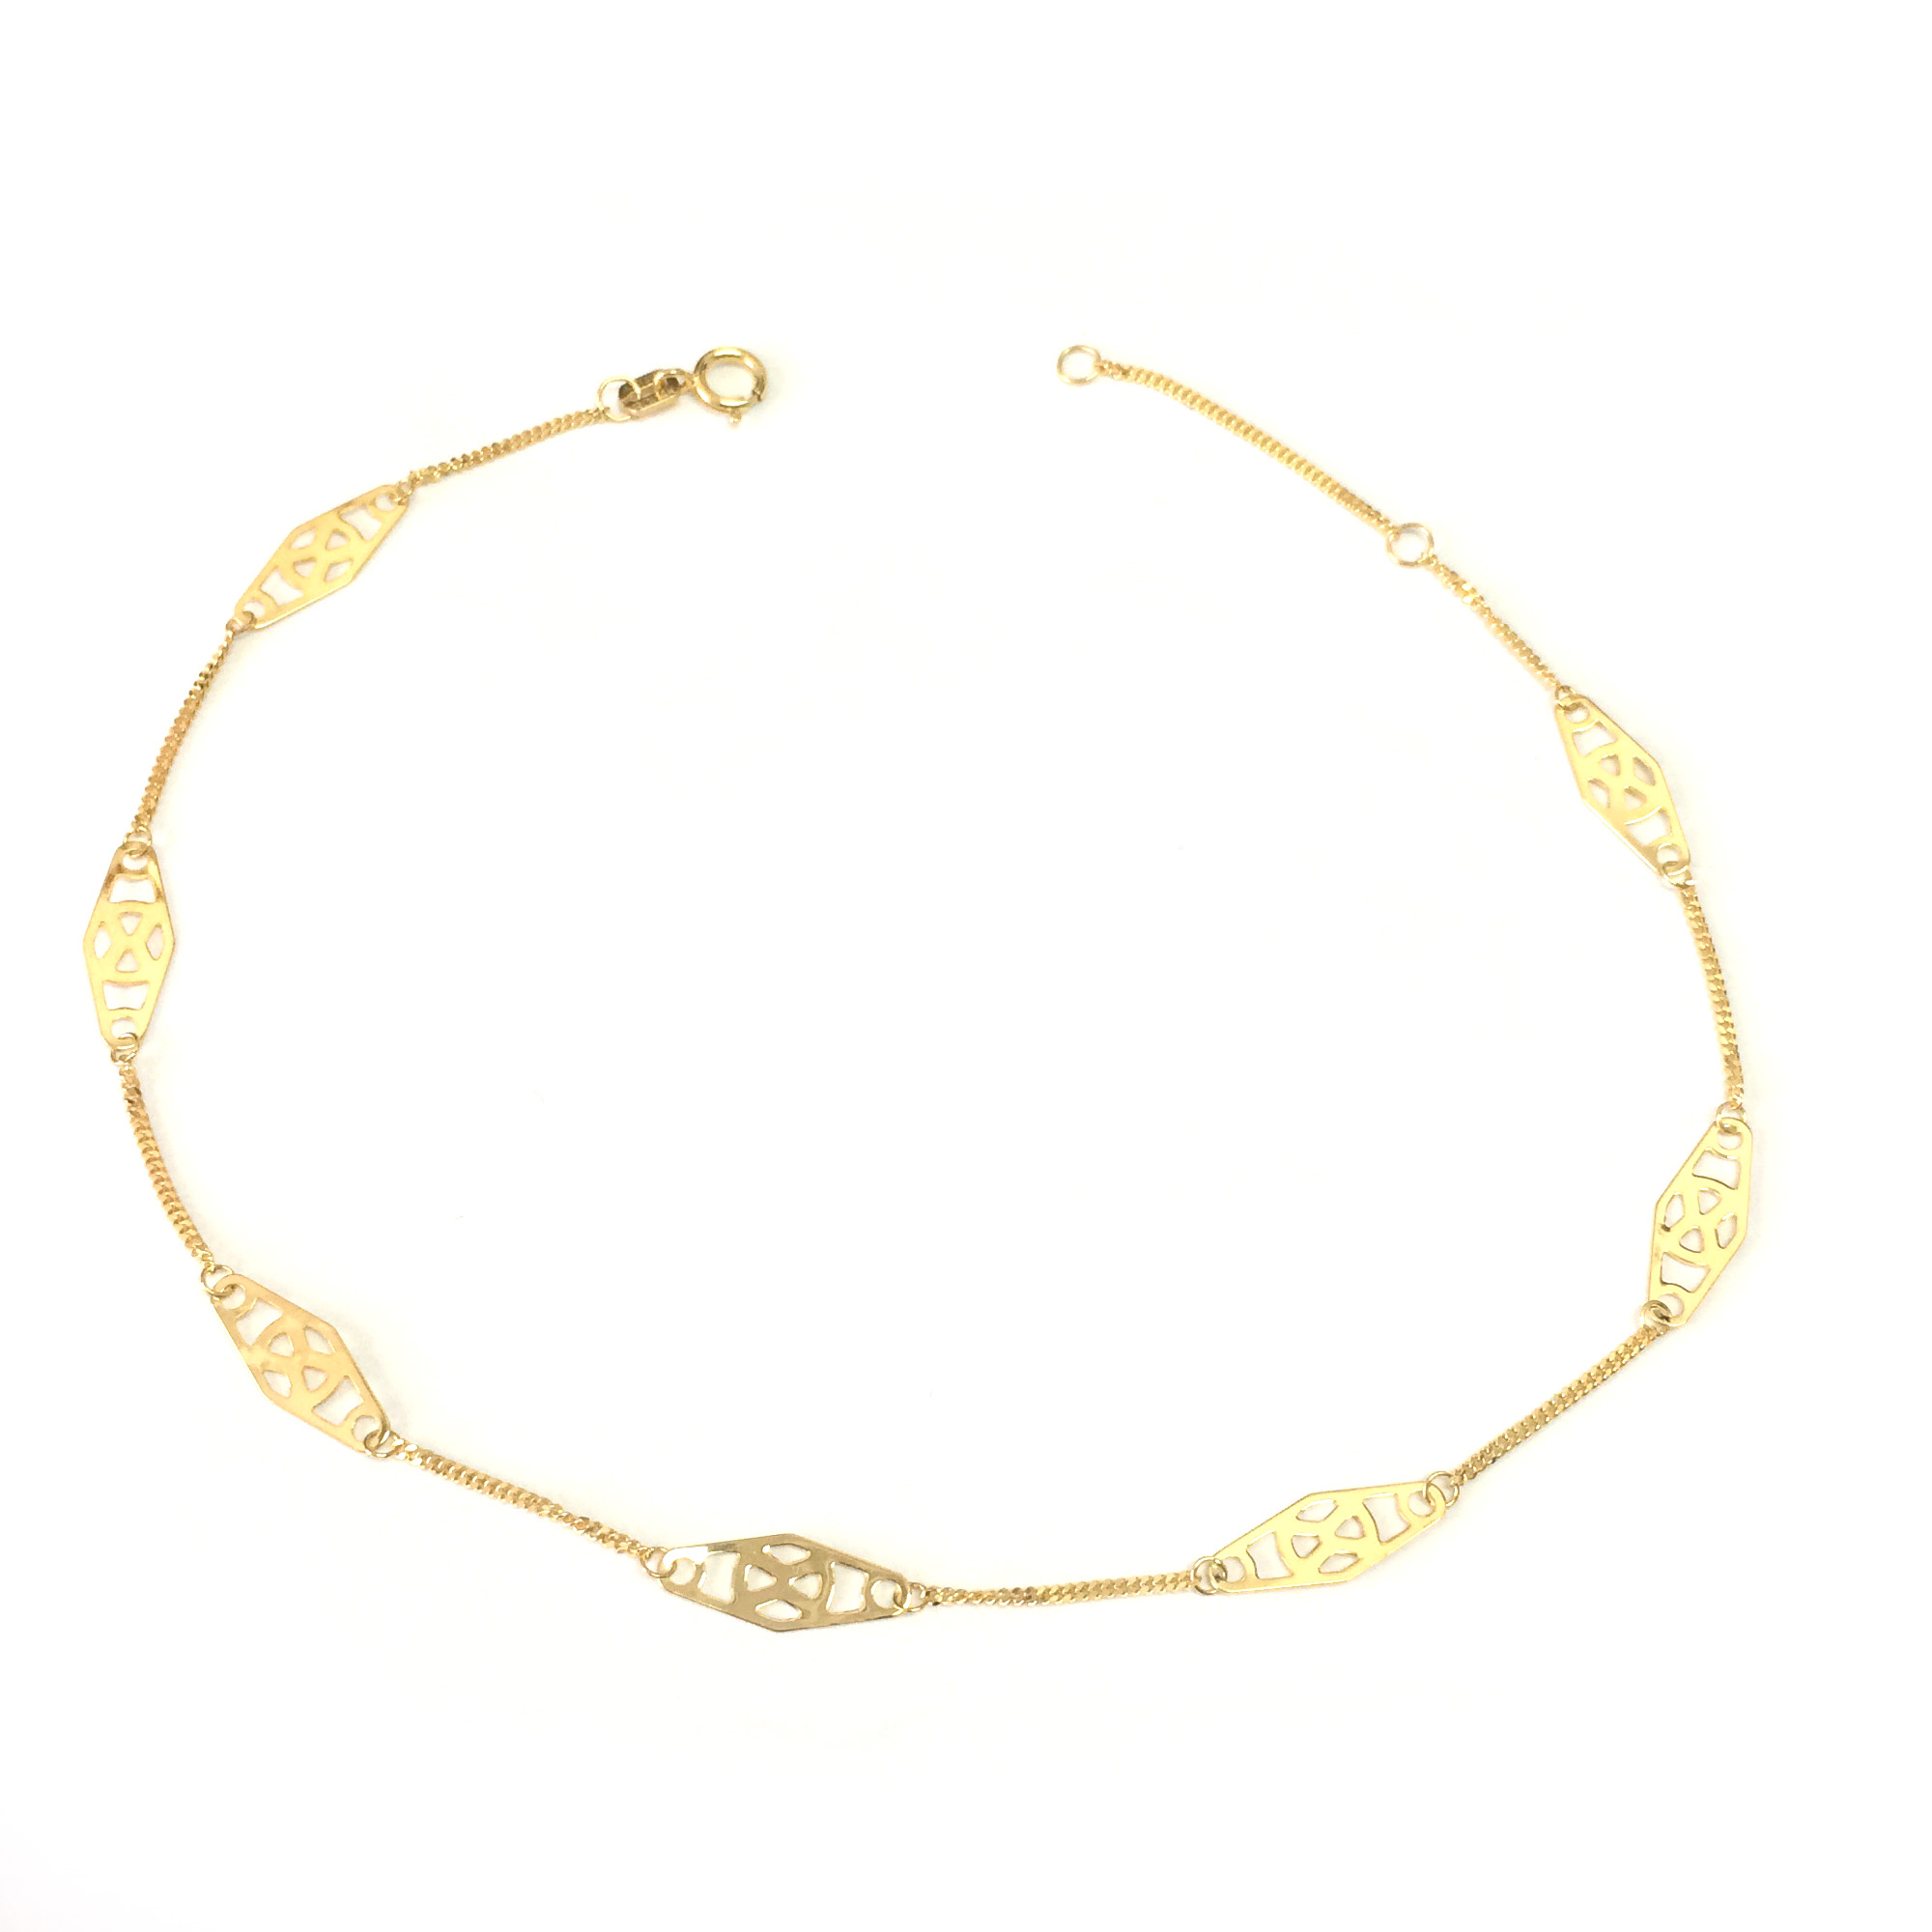 14K Yellow Gold Twisted Bar Fancy Anklet, 10″